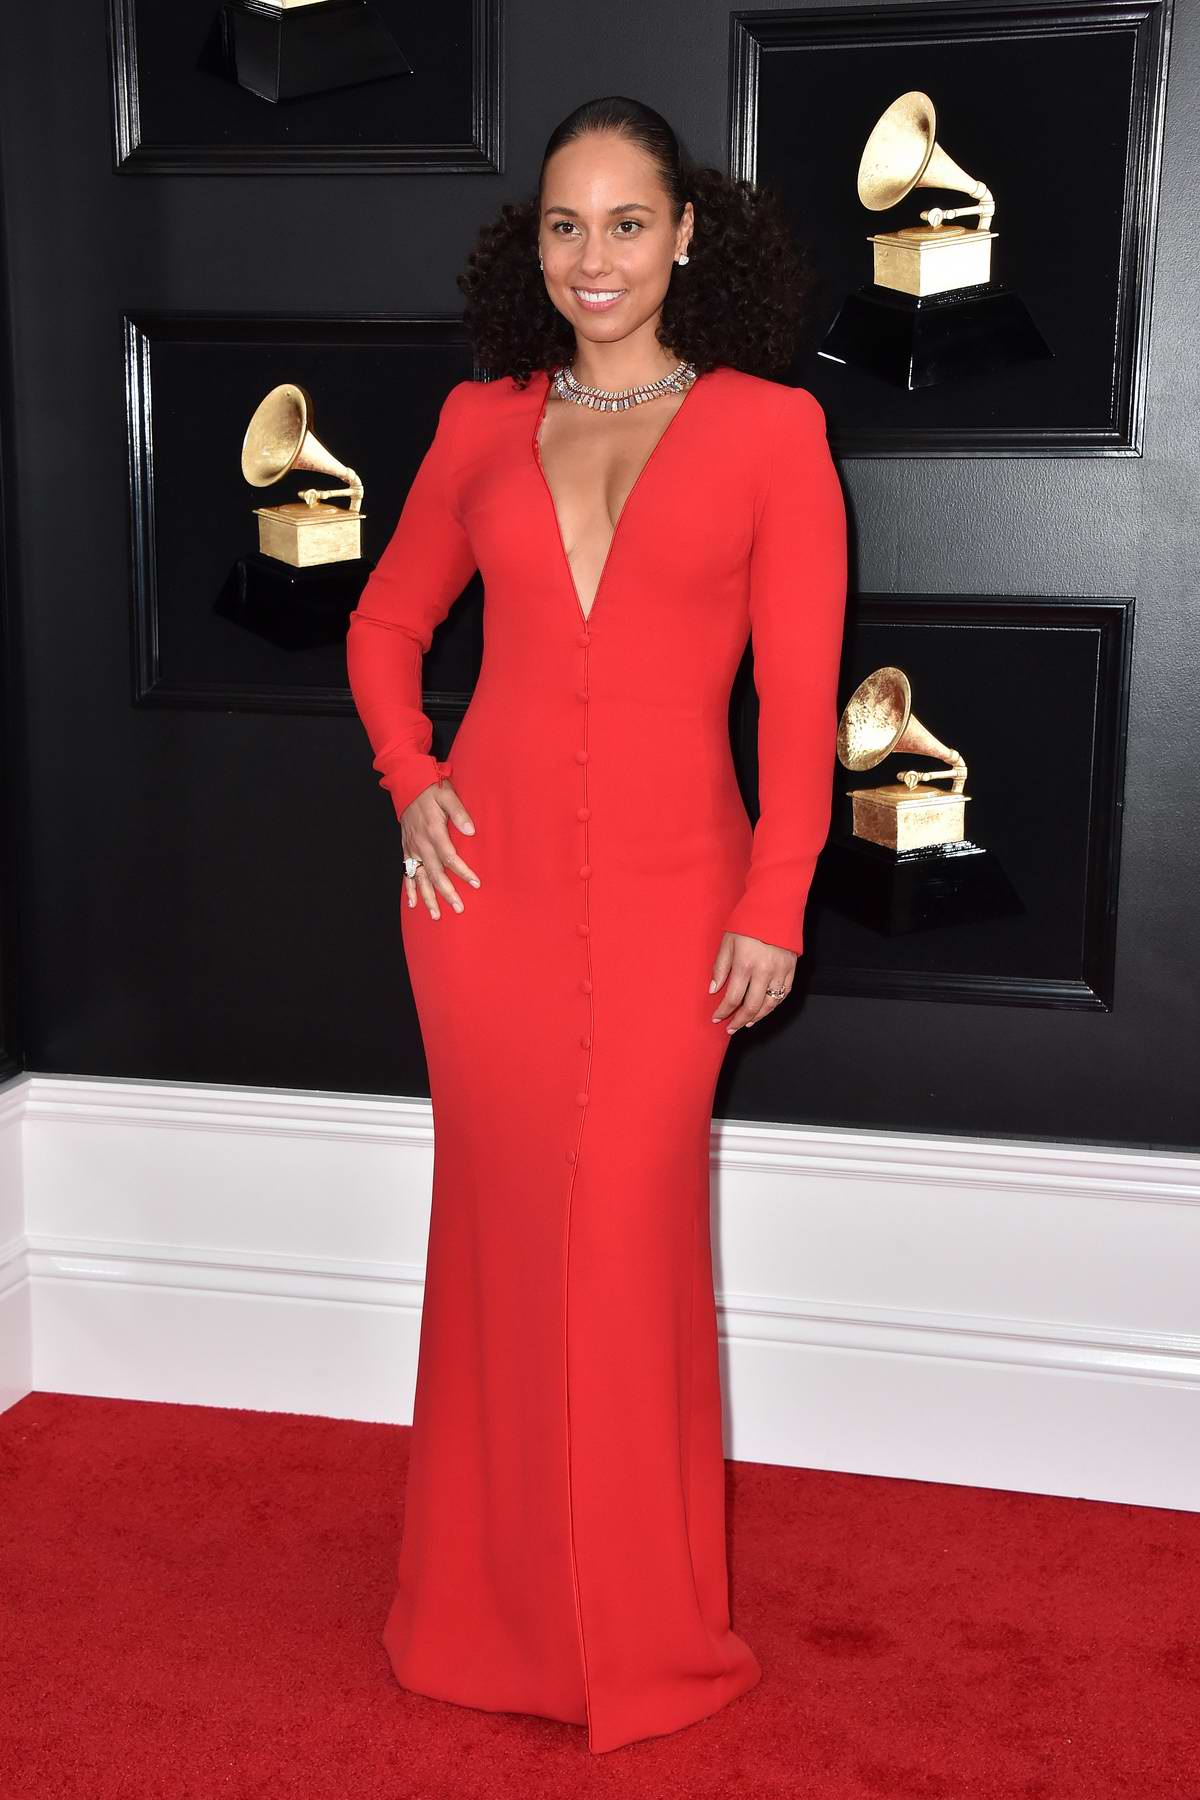 Alicia Keys attends the 61st Annual GRAMMY Awards (2019 GRAMMYs) at Staples Center in Los Angeles